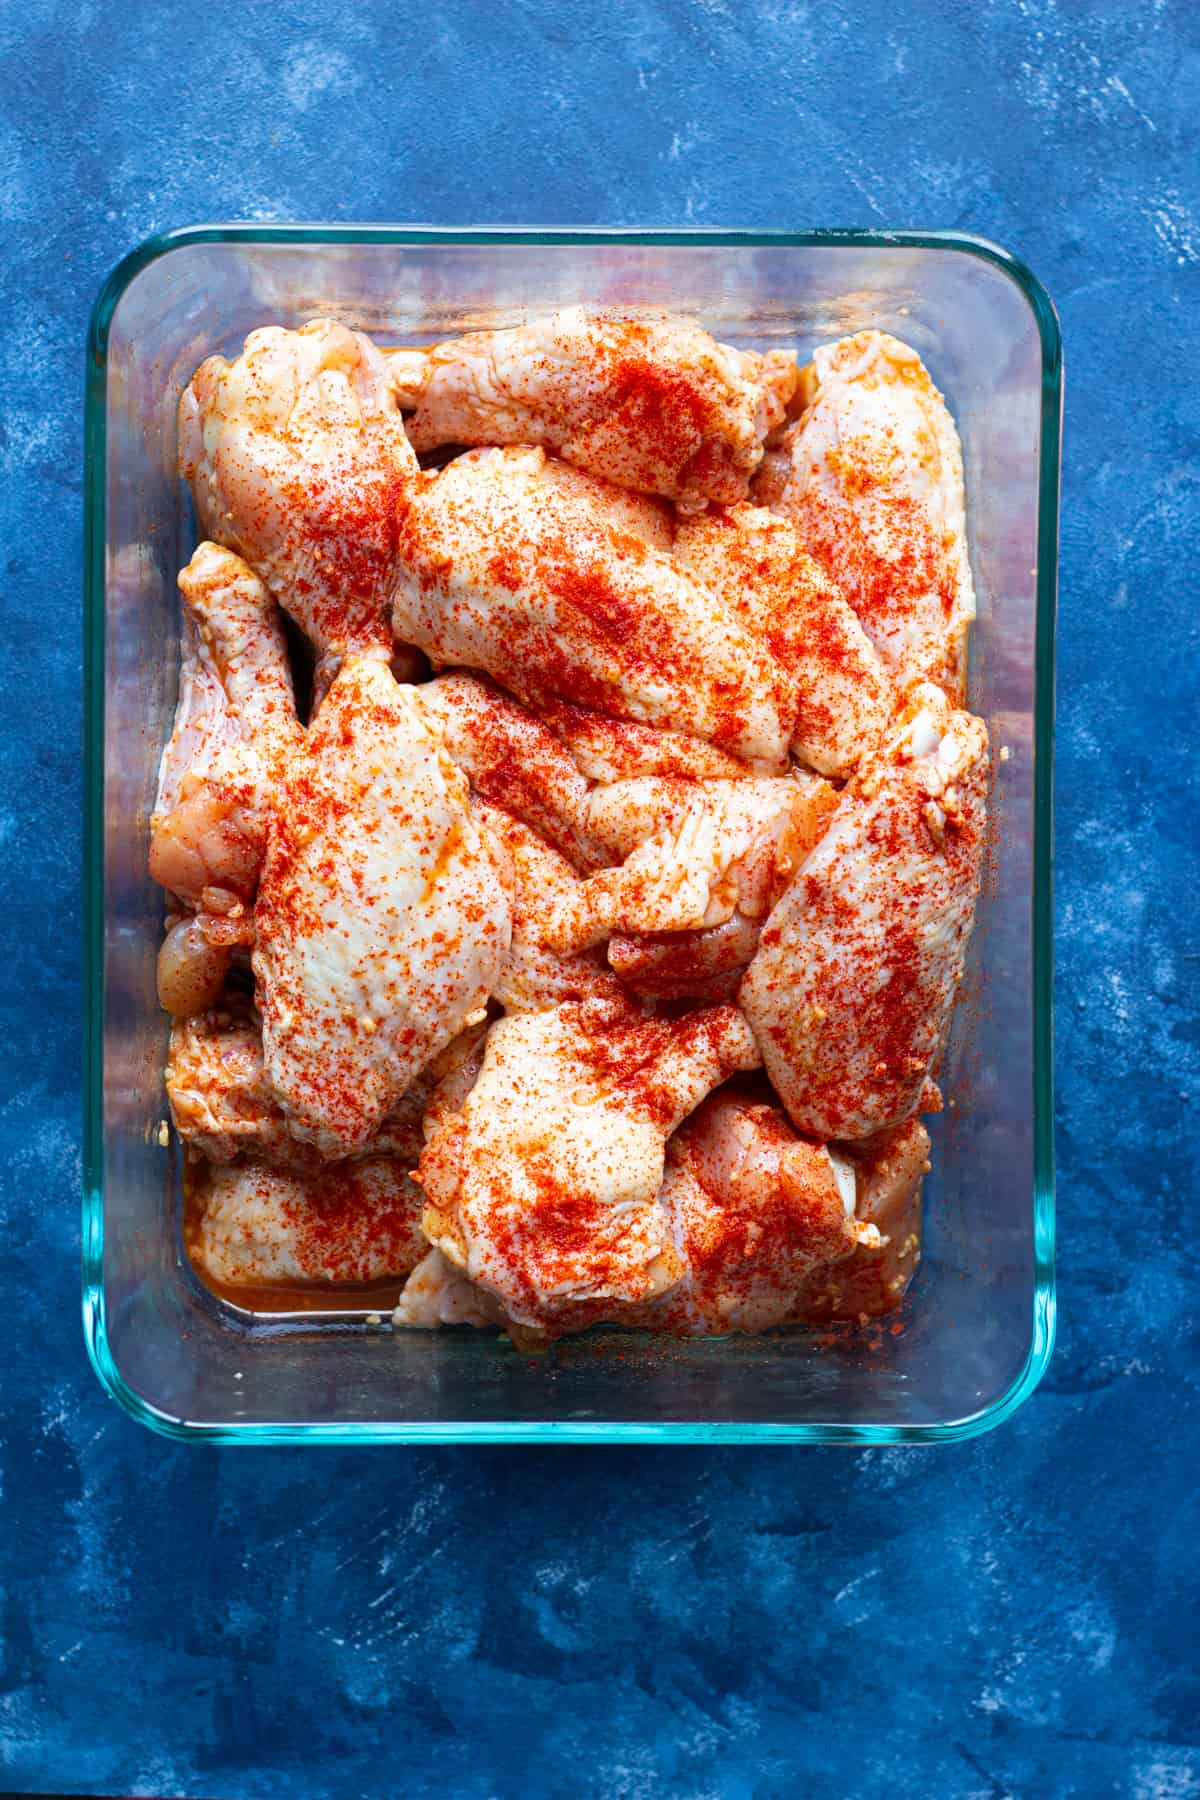 paprika adds color and flavor to chicken wings.